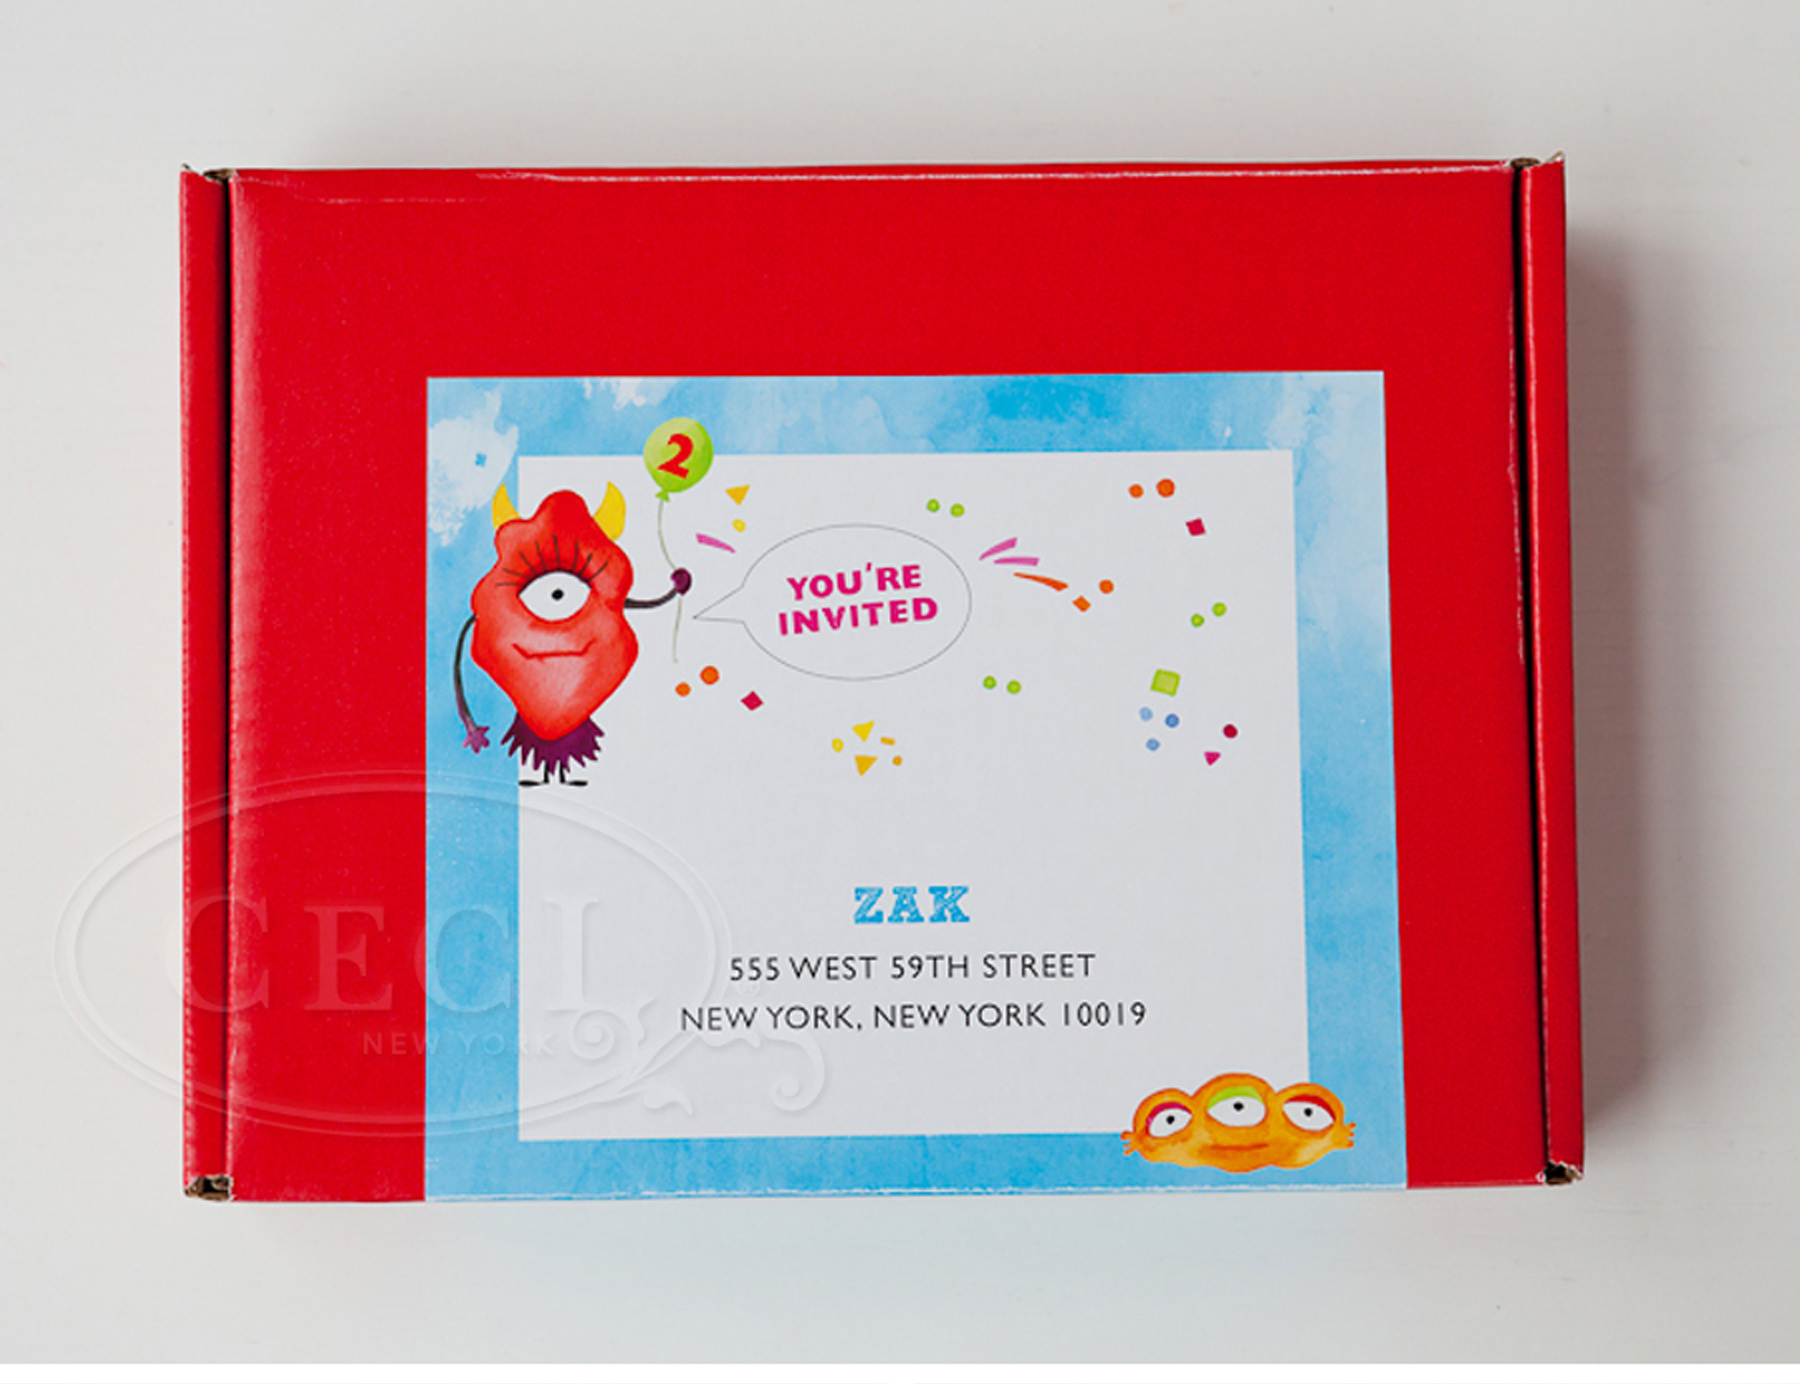 Luxury Wedding Invitations by Ceci New York - Our Muse - Monster Themed Kid's Birthday Party - Get inspired for your child's next birthday party with these fun ideas from Ceci Johnson of Ceci New York! - ceci johnson, birthday party, monster theme